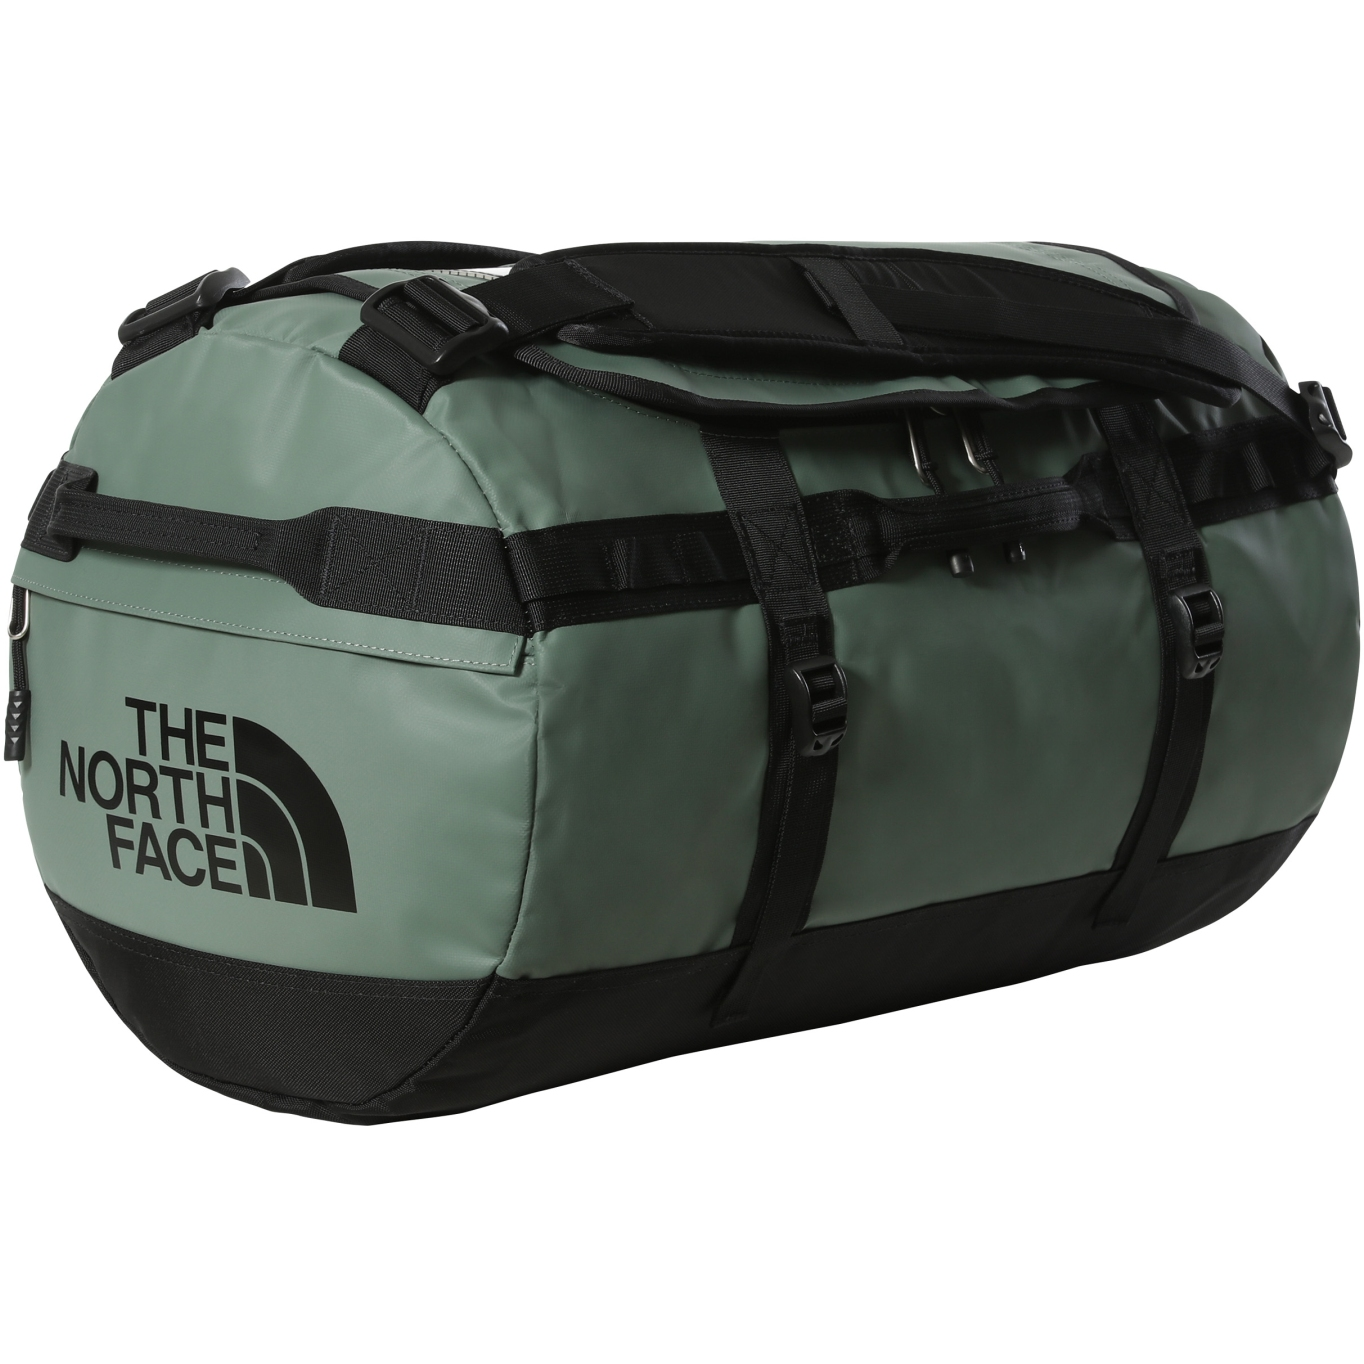 Picture of The North Face Base Camp Duffel - S - Laurel Wreath Green/TNF Black